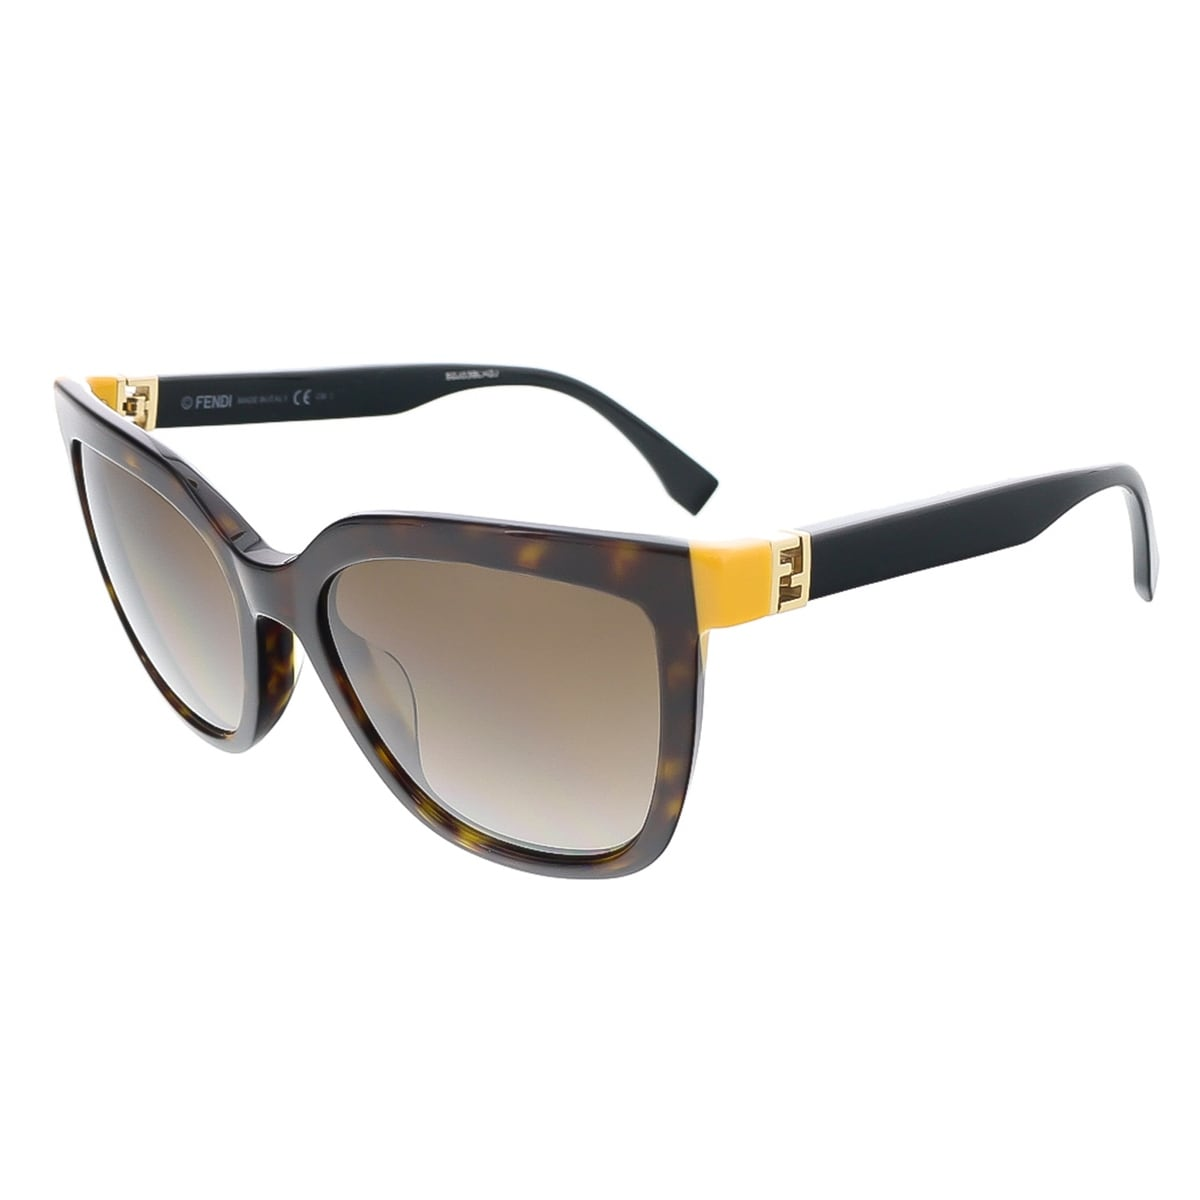 96b5d342c8 Fendi Men s Sunglasses